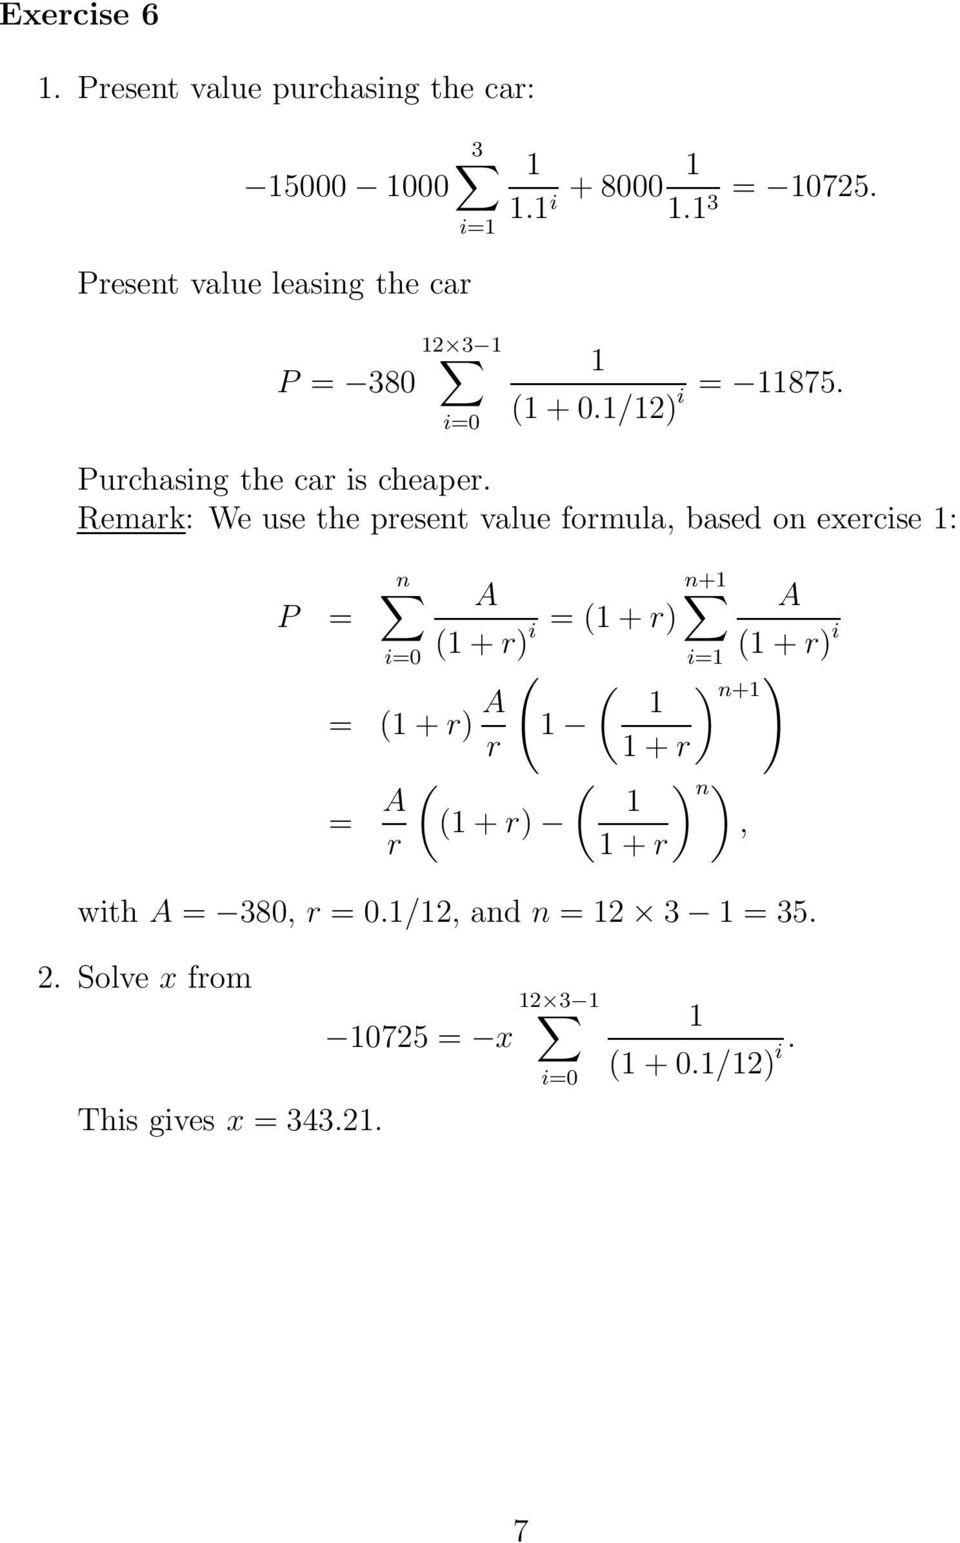 Remark: We use the present value formula, based on exercise 1: n A n+1 A P = i = (1 + r) (1 + r) (1 + r) i ( = (1 + r) A (